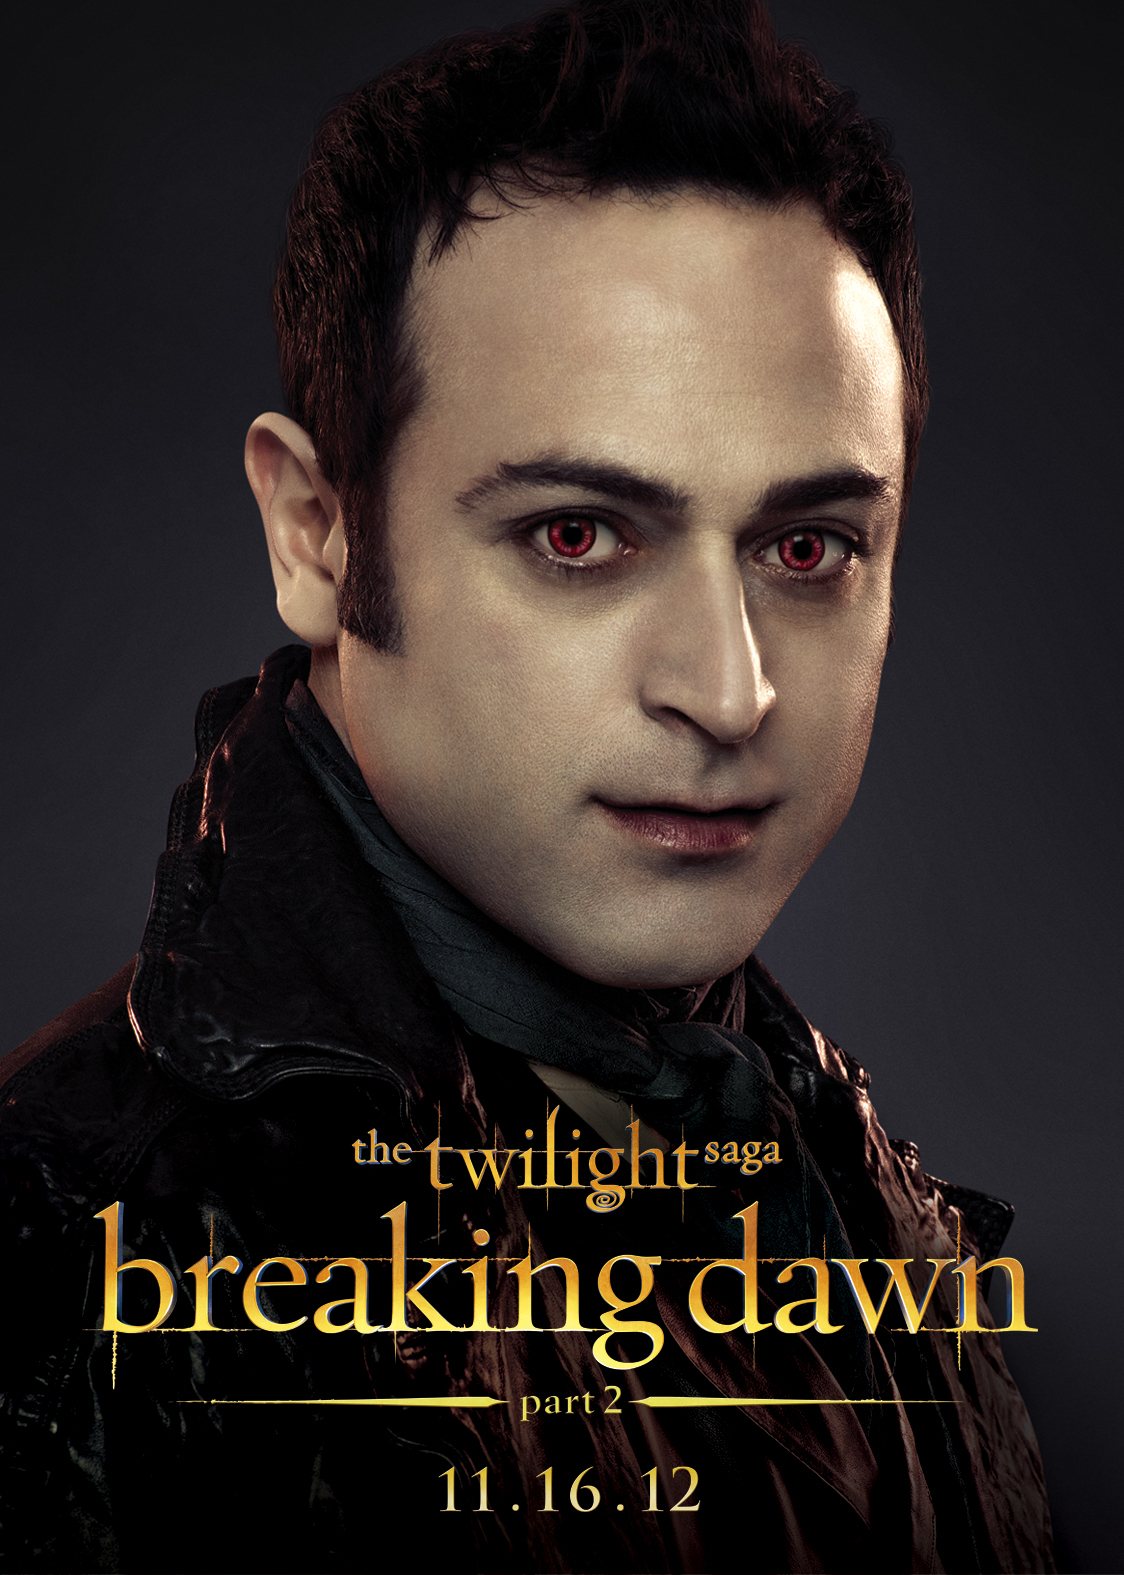 Twilight_Breaking_Dawn_Guri_Weinberg_Stefan